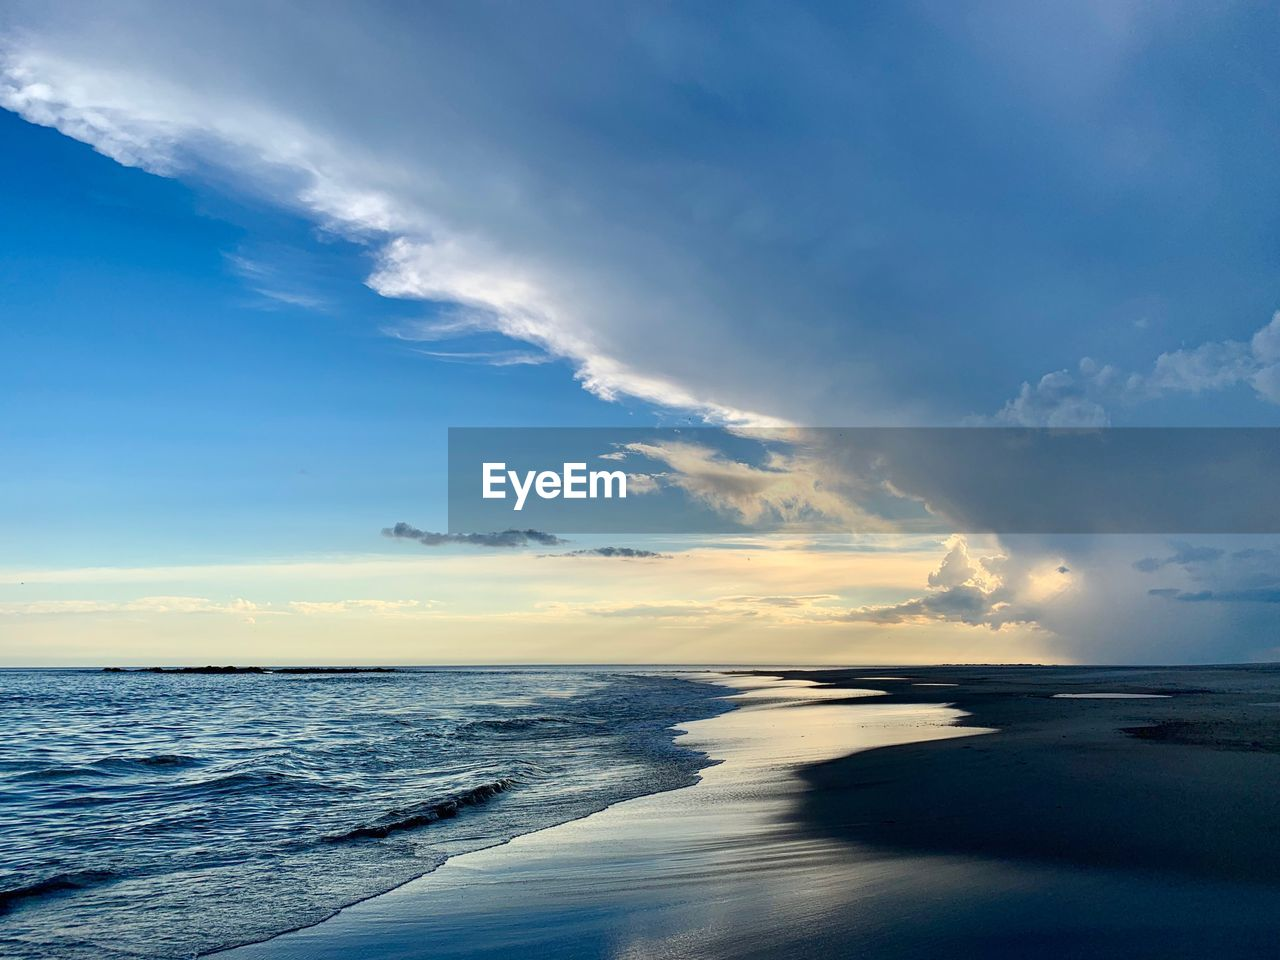 sky, sea, water, scenics - nature, cloud - sky, beauty in nature, horizon over water, horizon, tranquility, tranquil scene, beach, sunset, motion, land, nature, idyllic, wave, non-urban scene, no people, outdoors